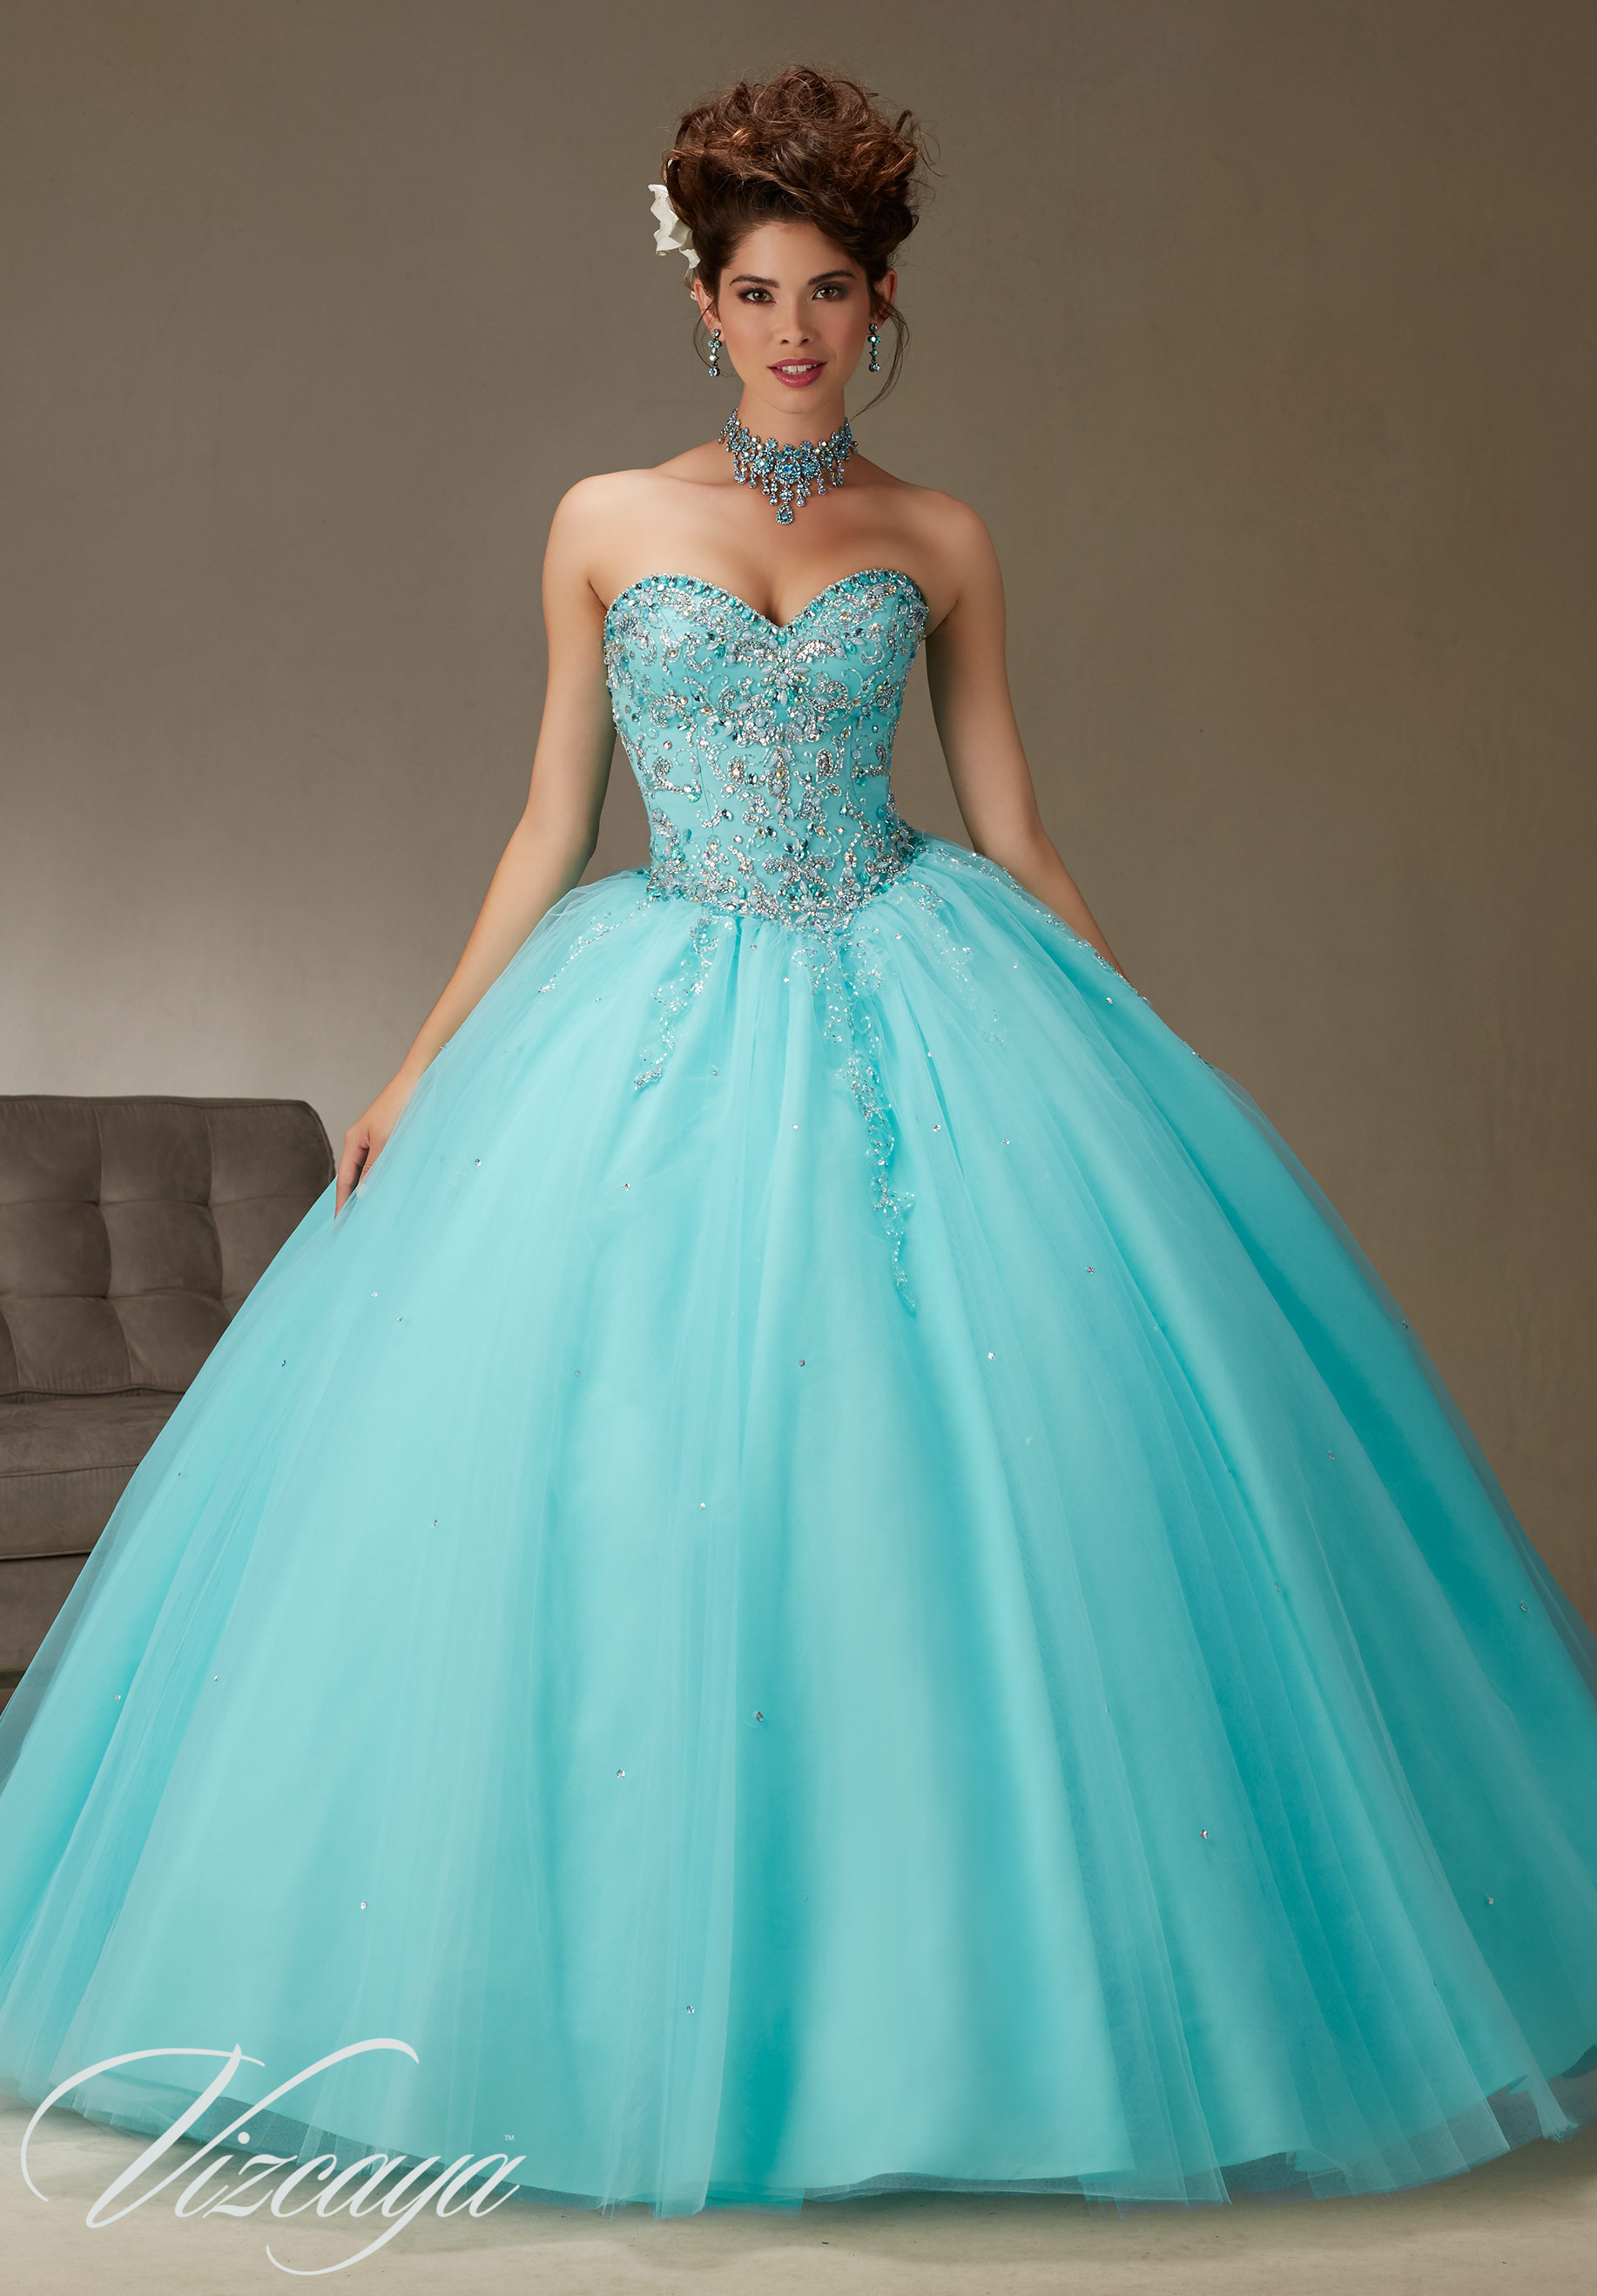 9ee5744823b Quinceanera Dress 89062 TULLE BALL GOWN WITH BEADING